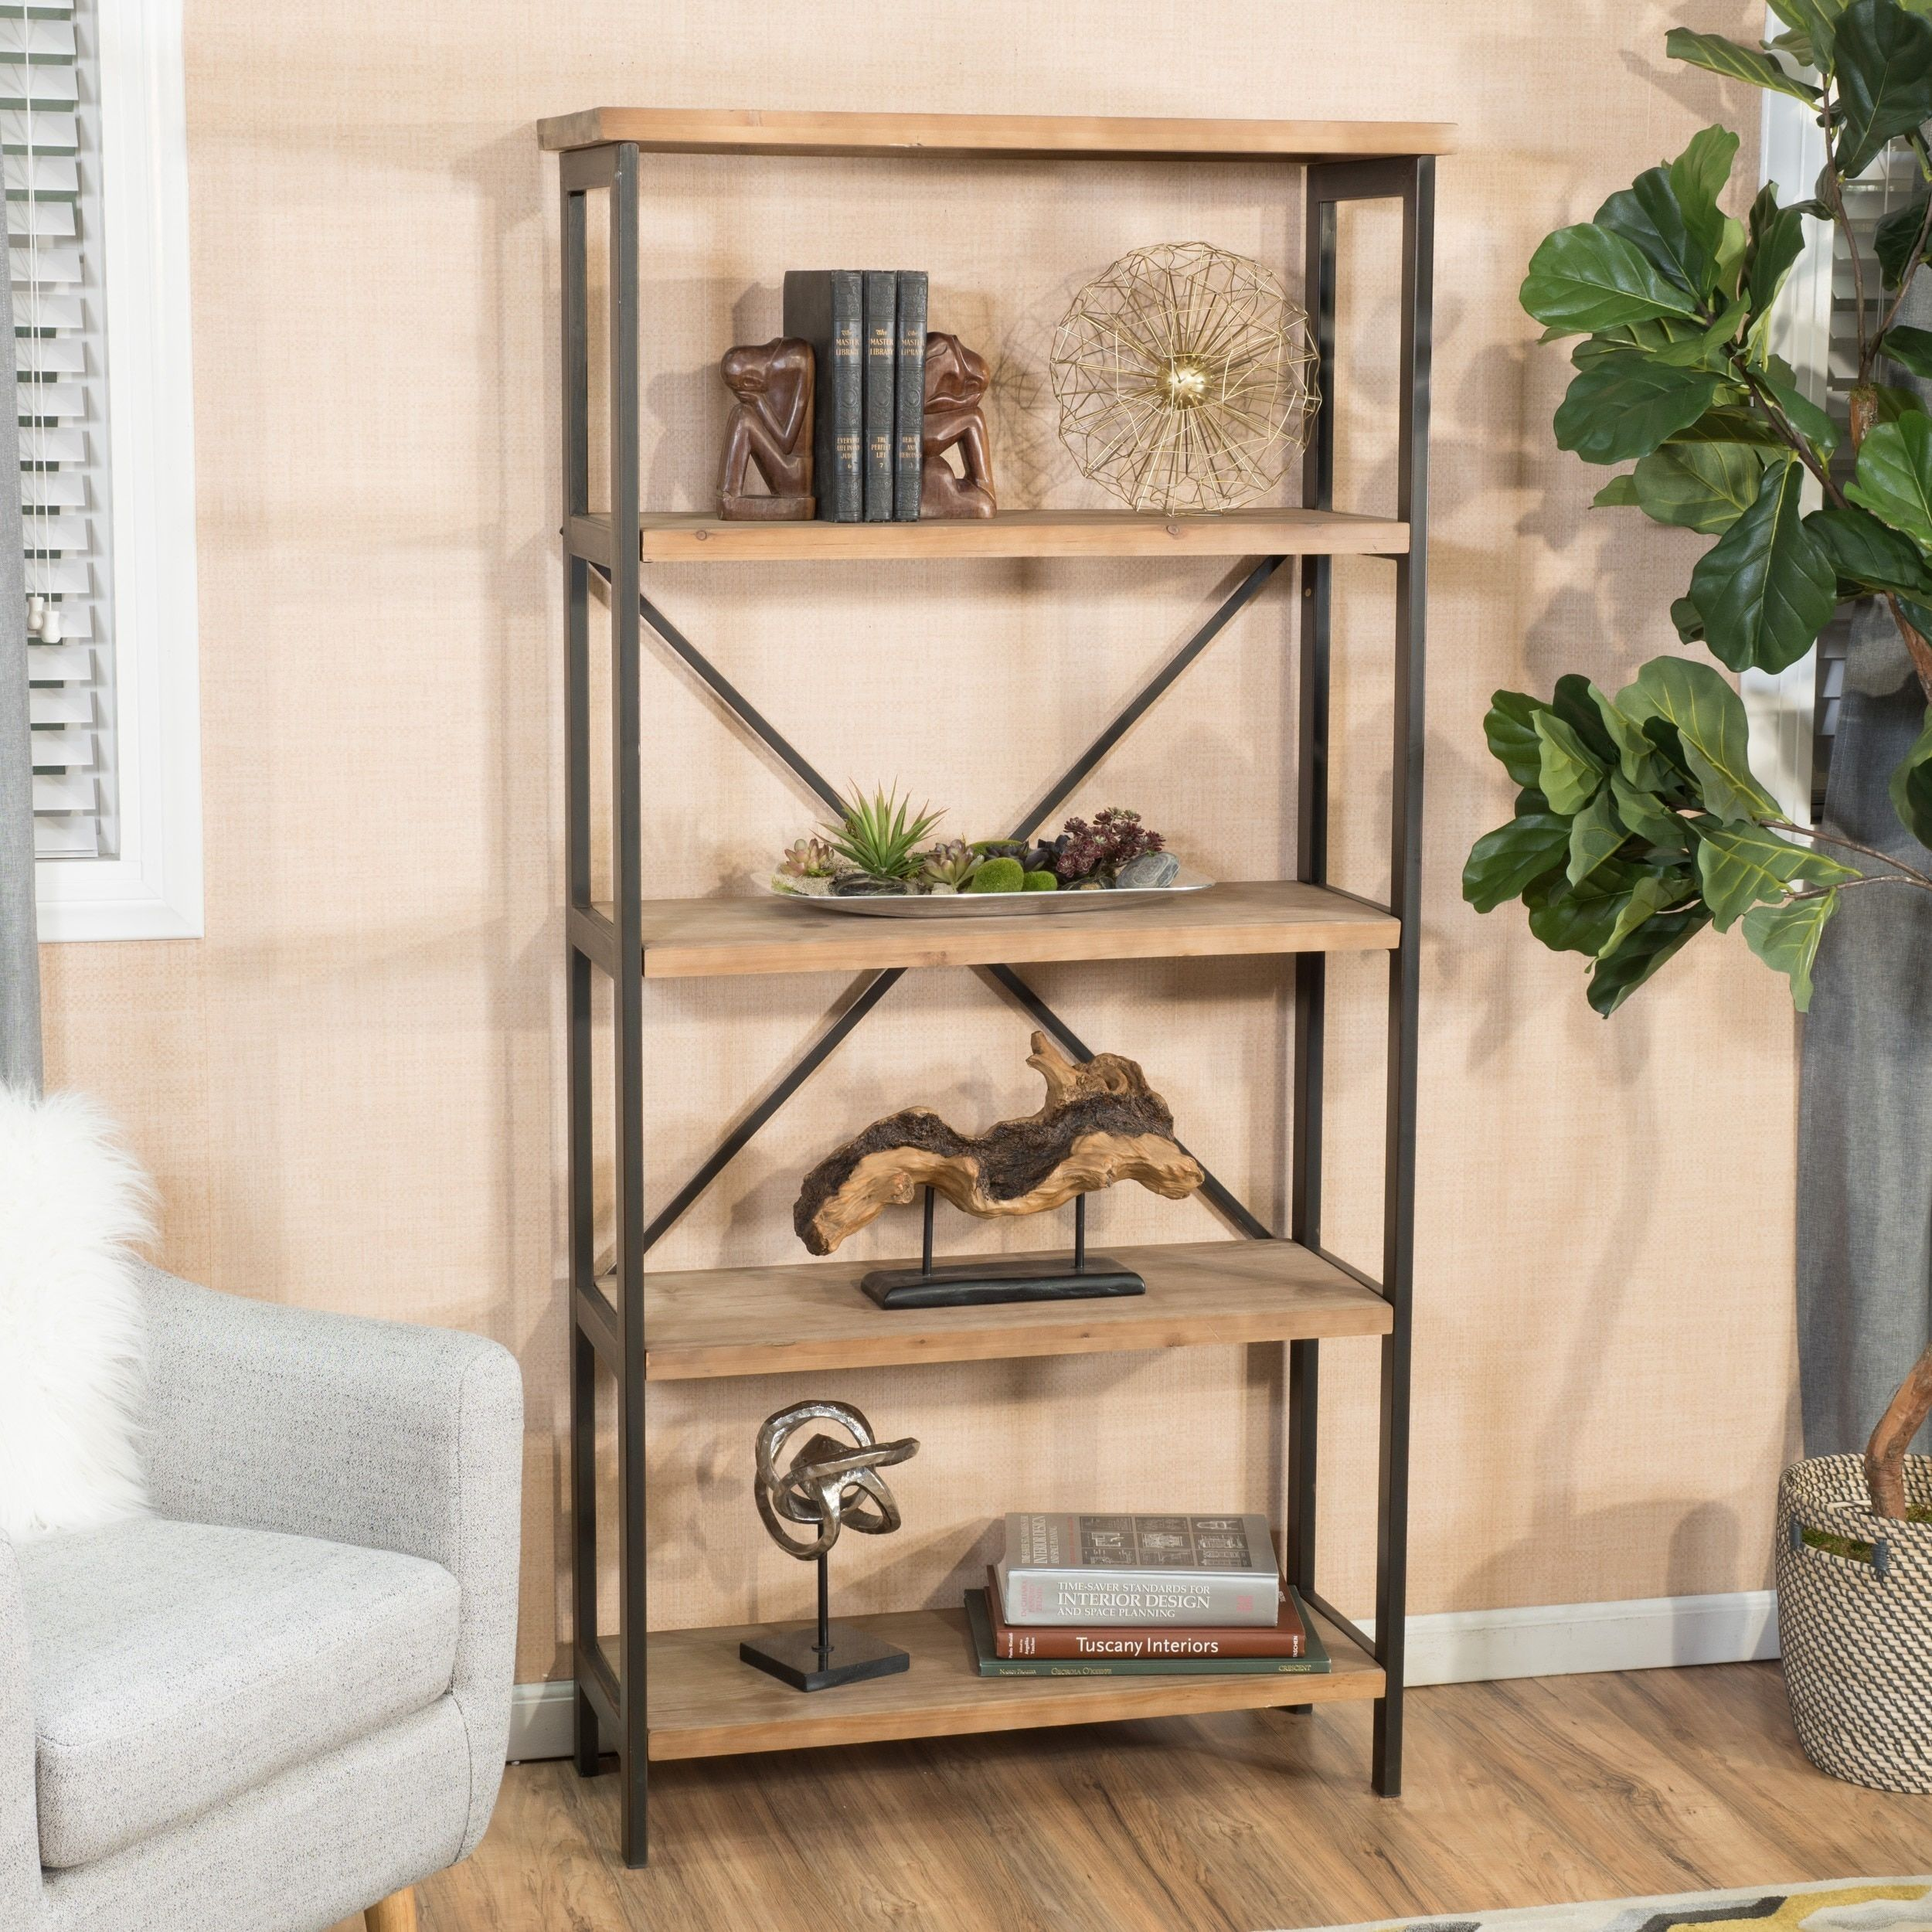 Bookshelf Home Goods Free Shipping On Orders Over 45 At Overstock